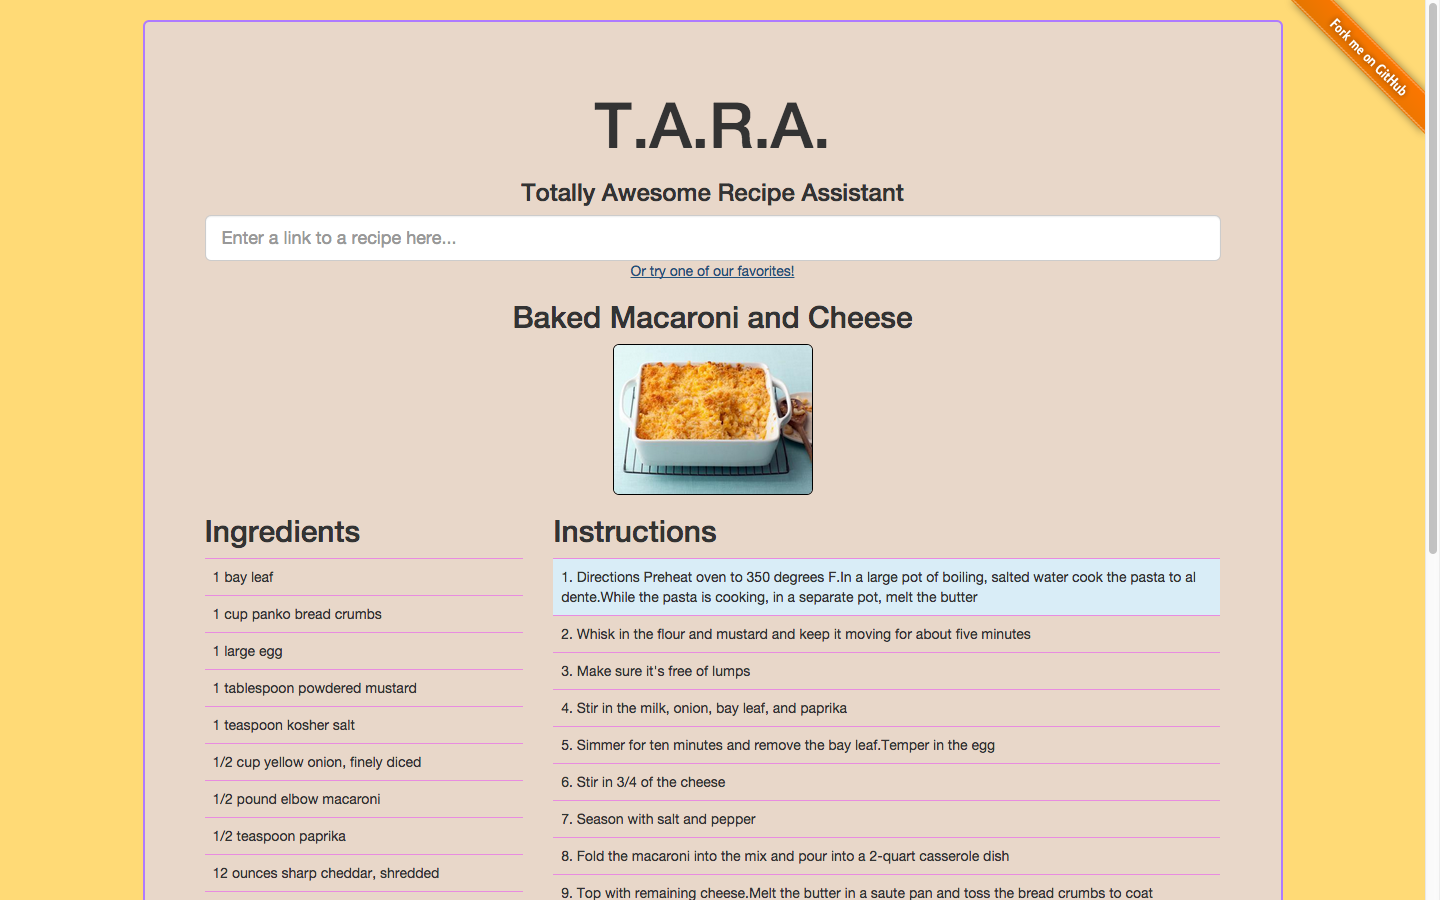 Screenshot of TARA website showing recipe view of baked macaroni and cheese